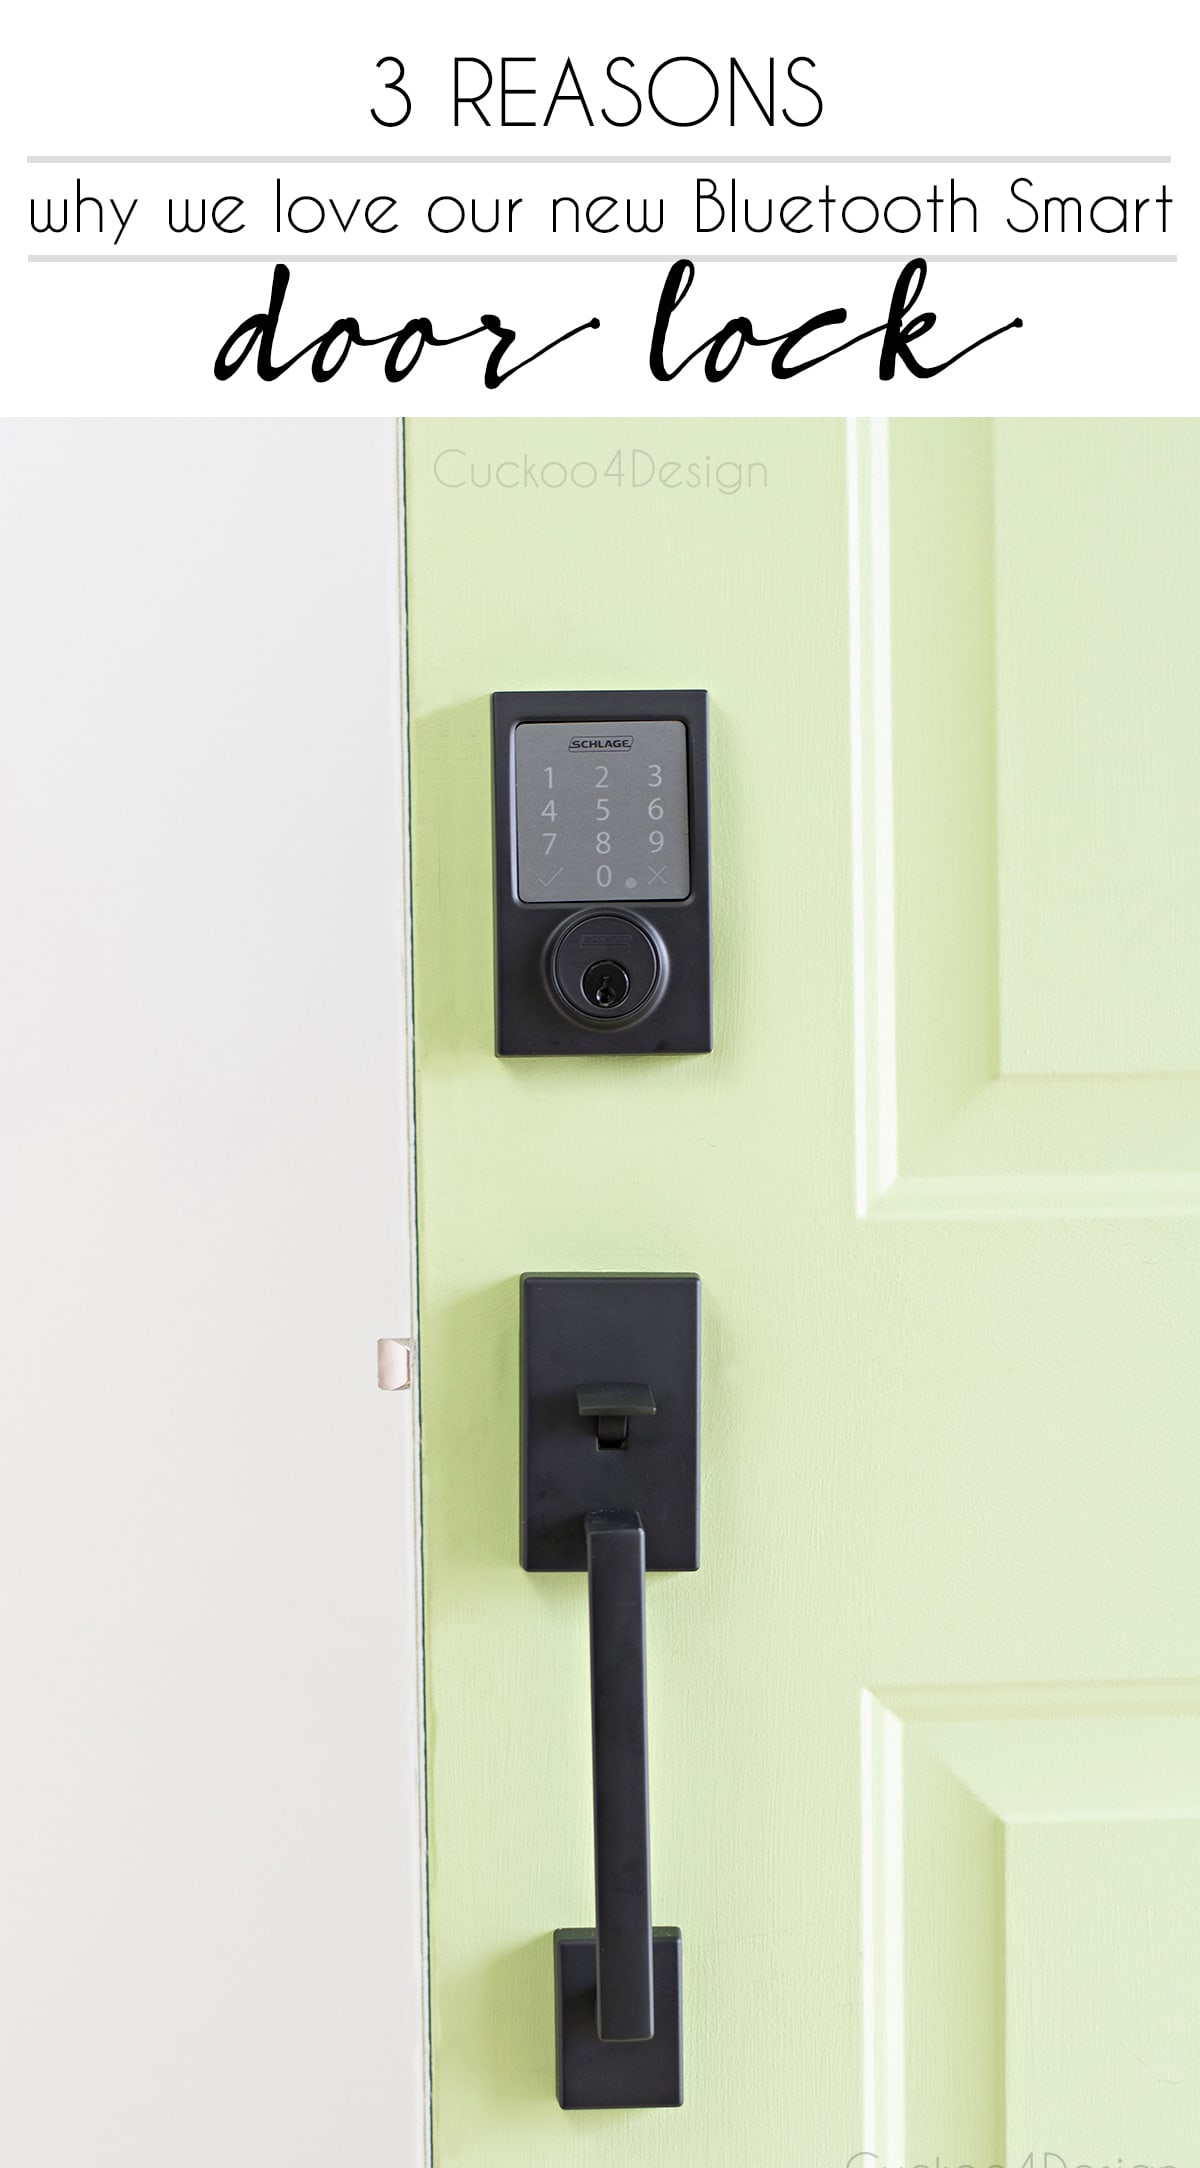 3 reasons why we love our Schlage Sense Smart Deadbolt | Schlage keyless lock | schlage keyless deadbolt | door bolt lock | push button door lock |  best door locks | electric door opener | most secure door locks | wifi controlled door lock | Bluetooth Smart door lock | homekit deadbolt | wireless deadbolt lock | smart lock | keypad door lock | electronic door locks | keyless entry